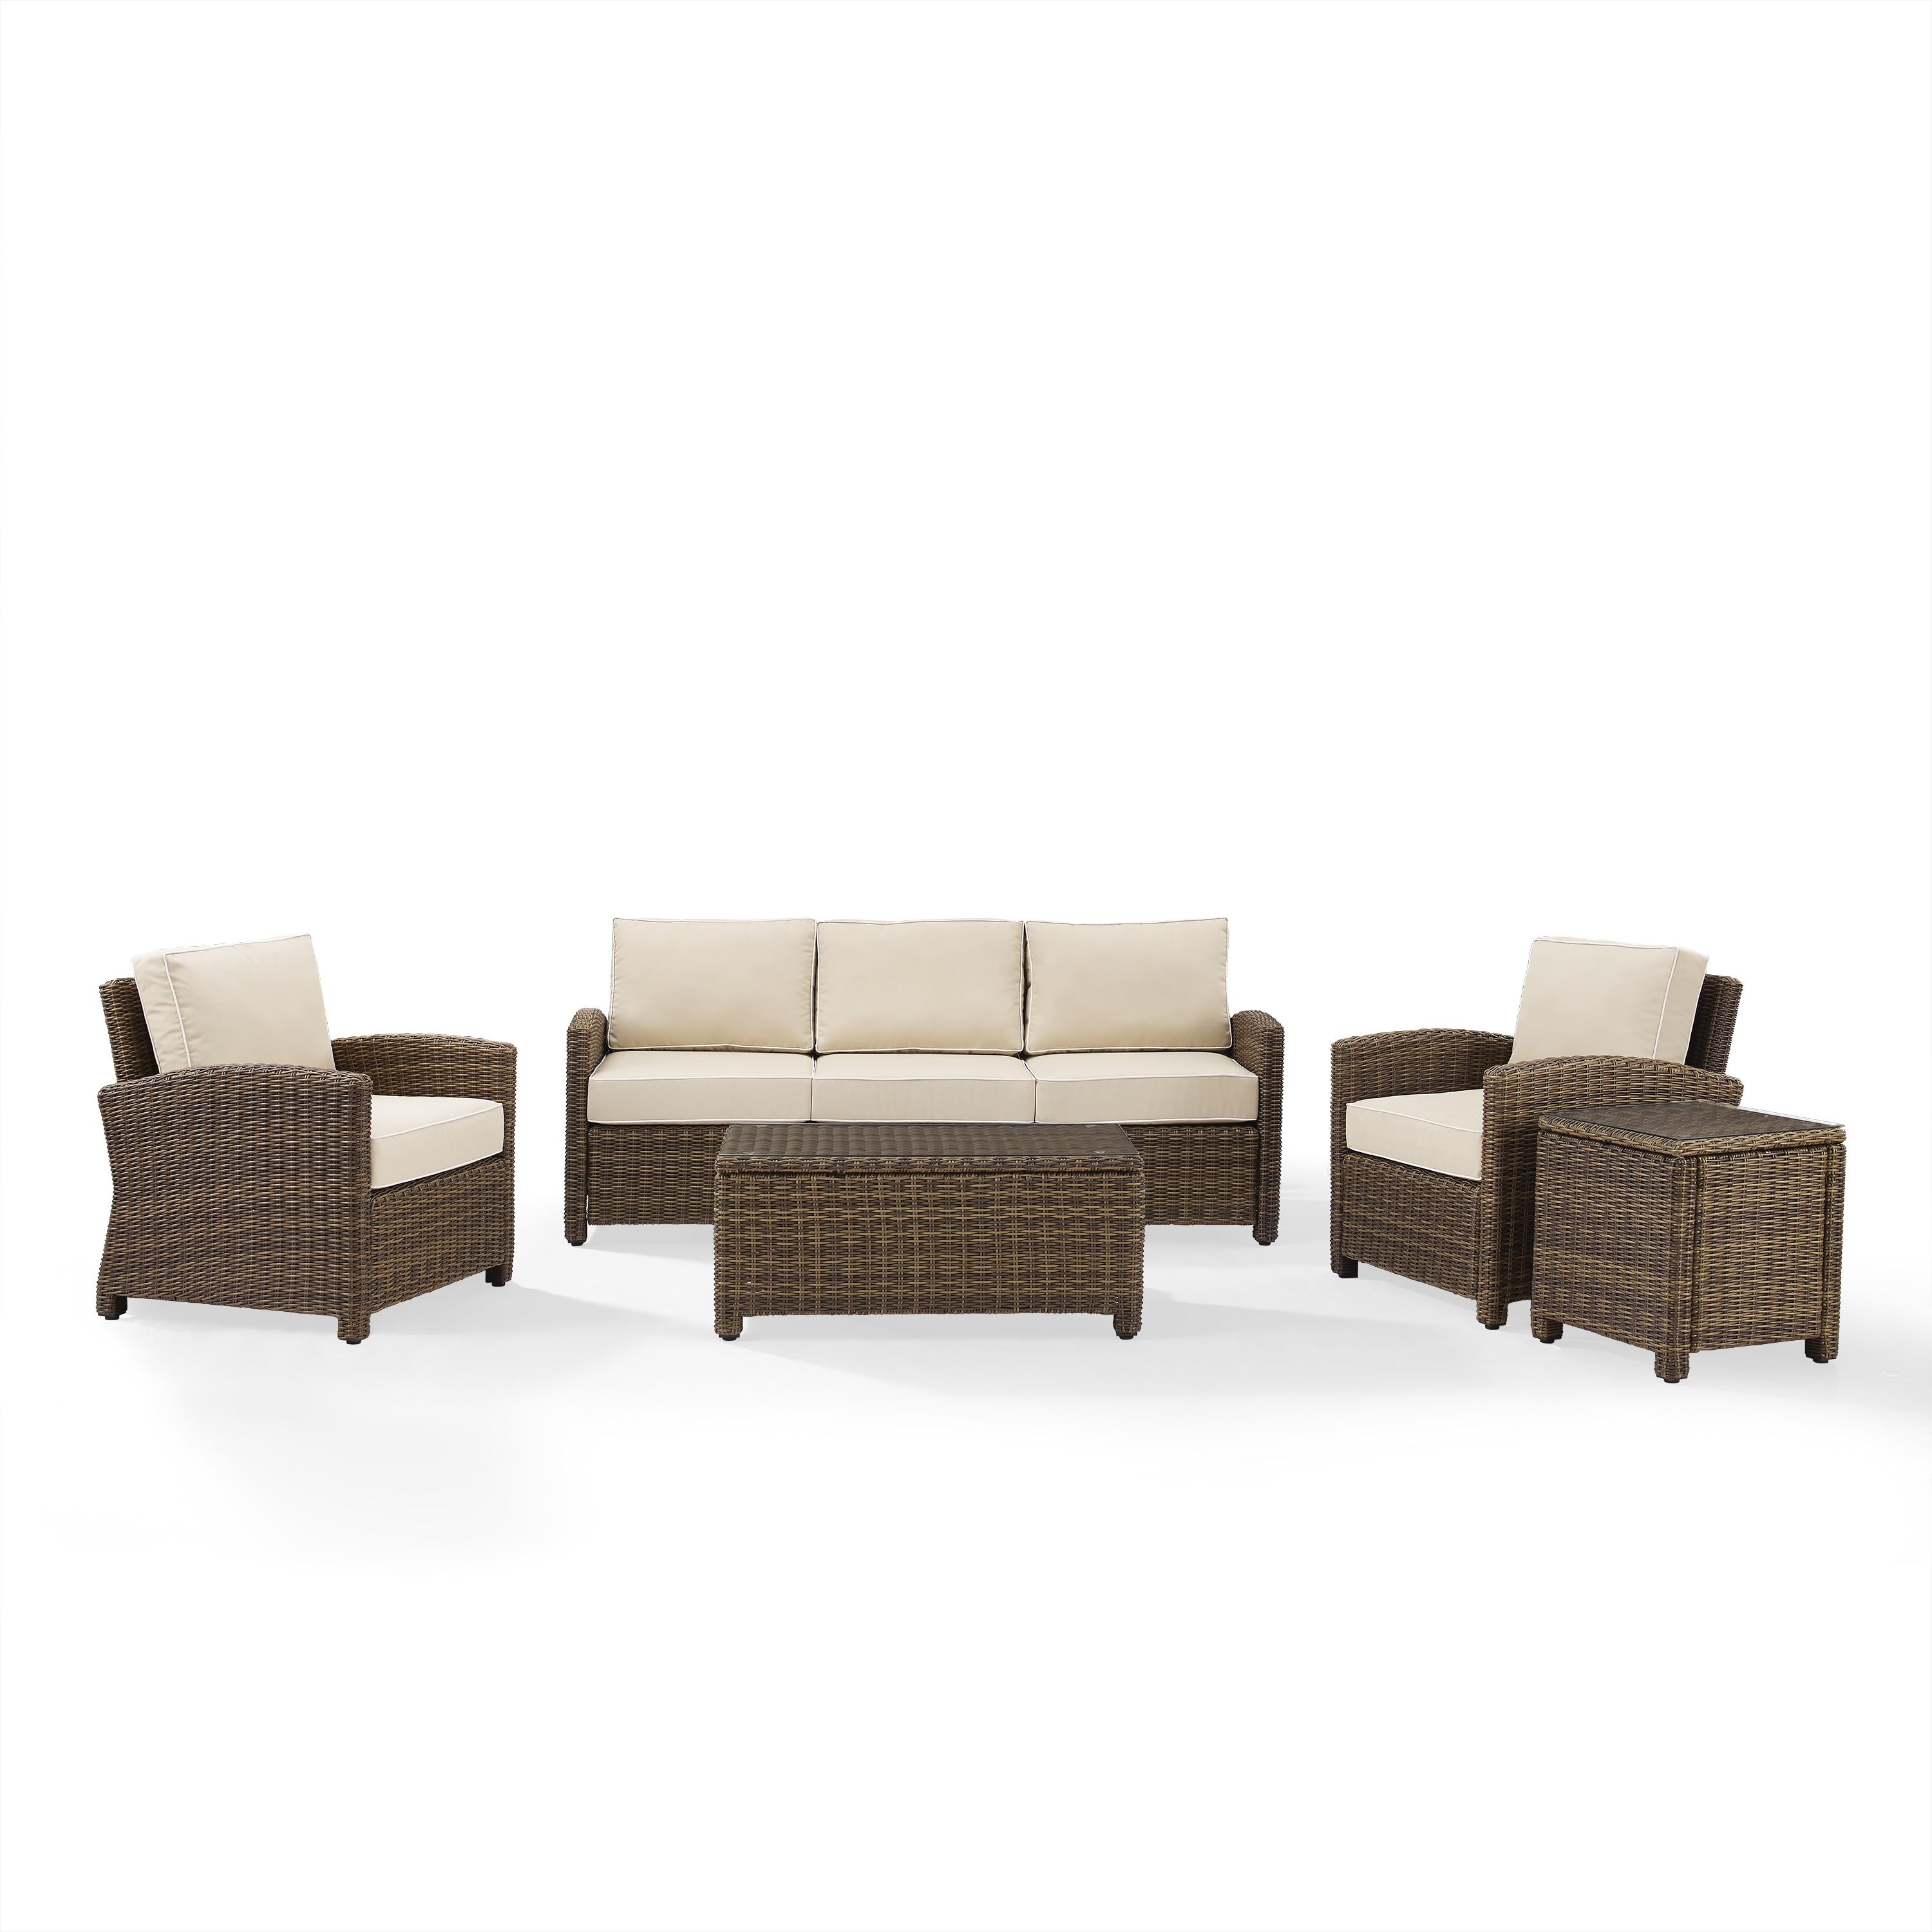 Bradenton 5 Piece Outdoor Wicker Set With Sand Cushions Sofa Two Arm Chairs Side Table Glass Top Table